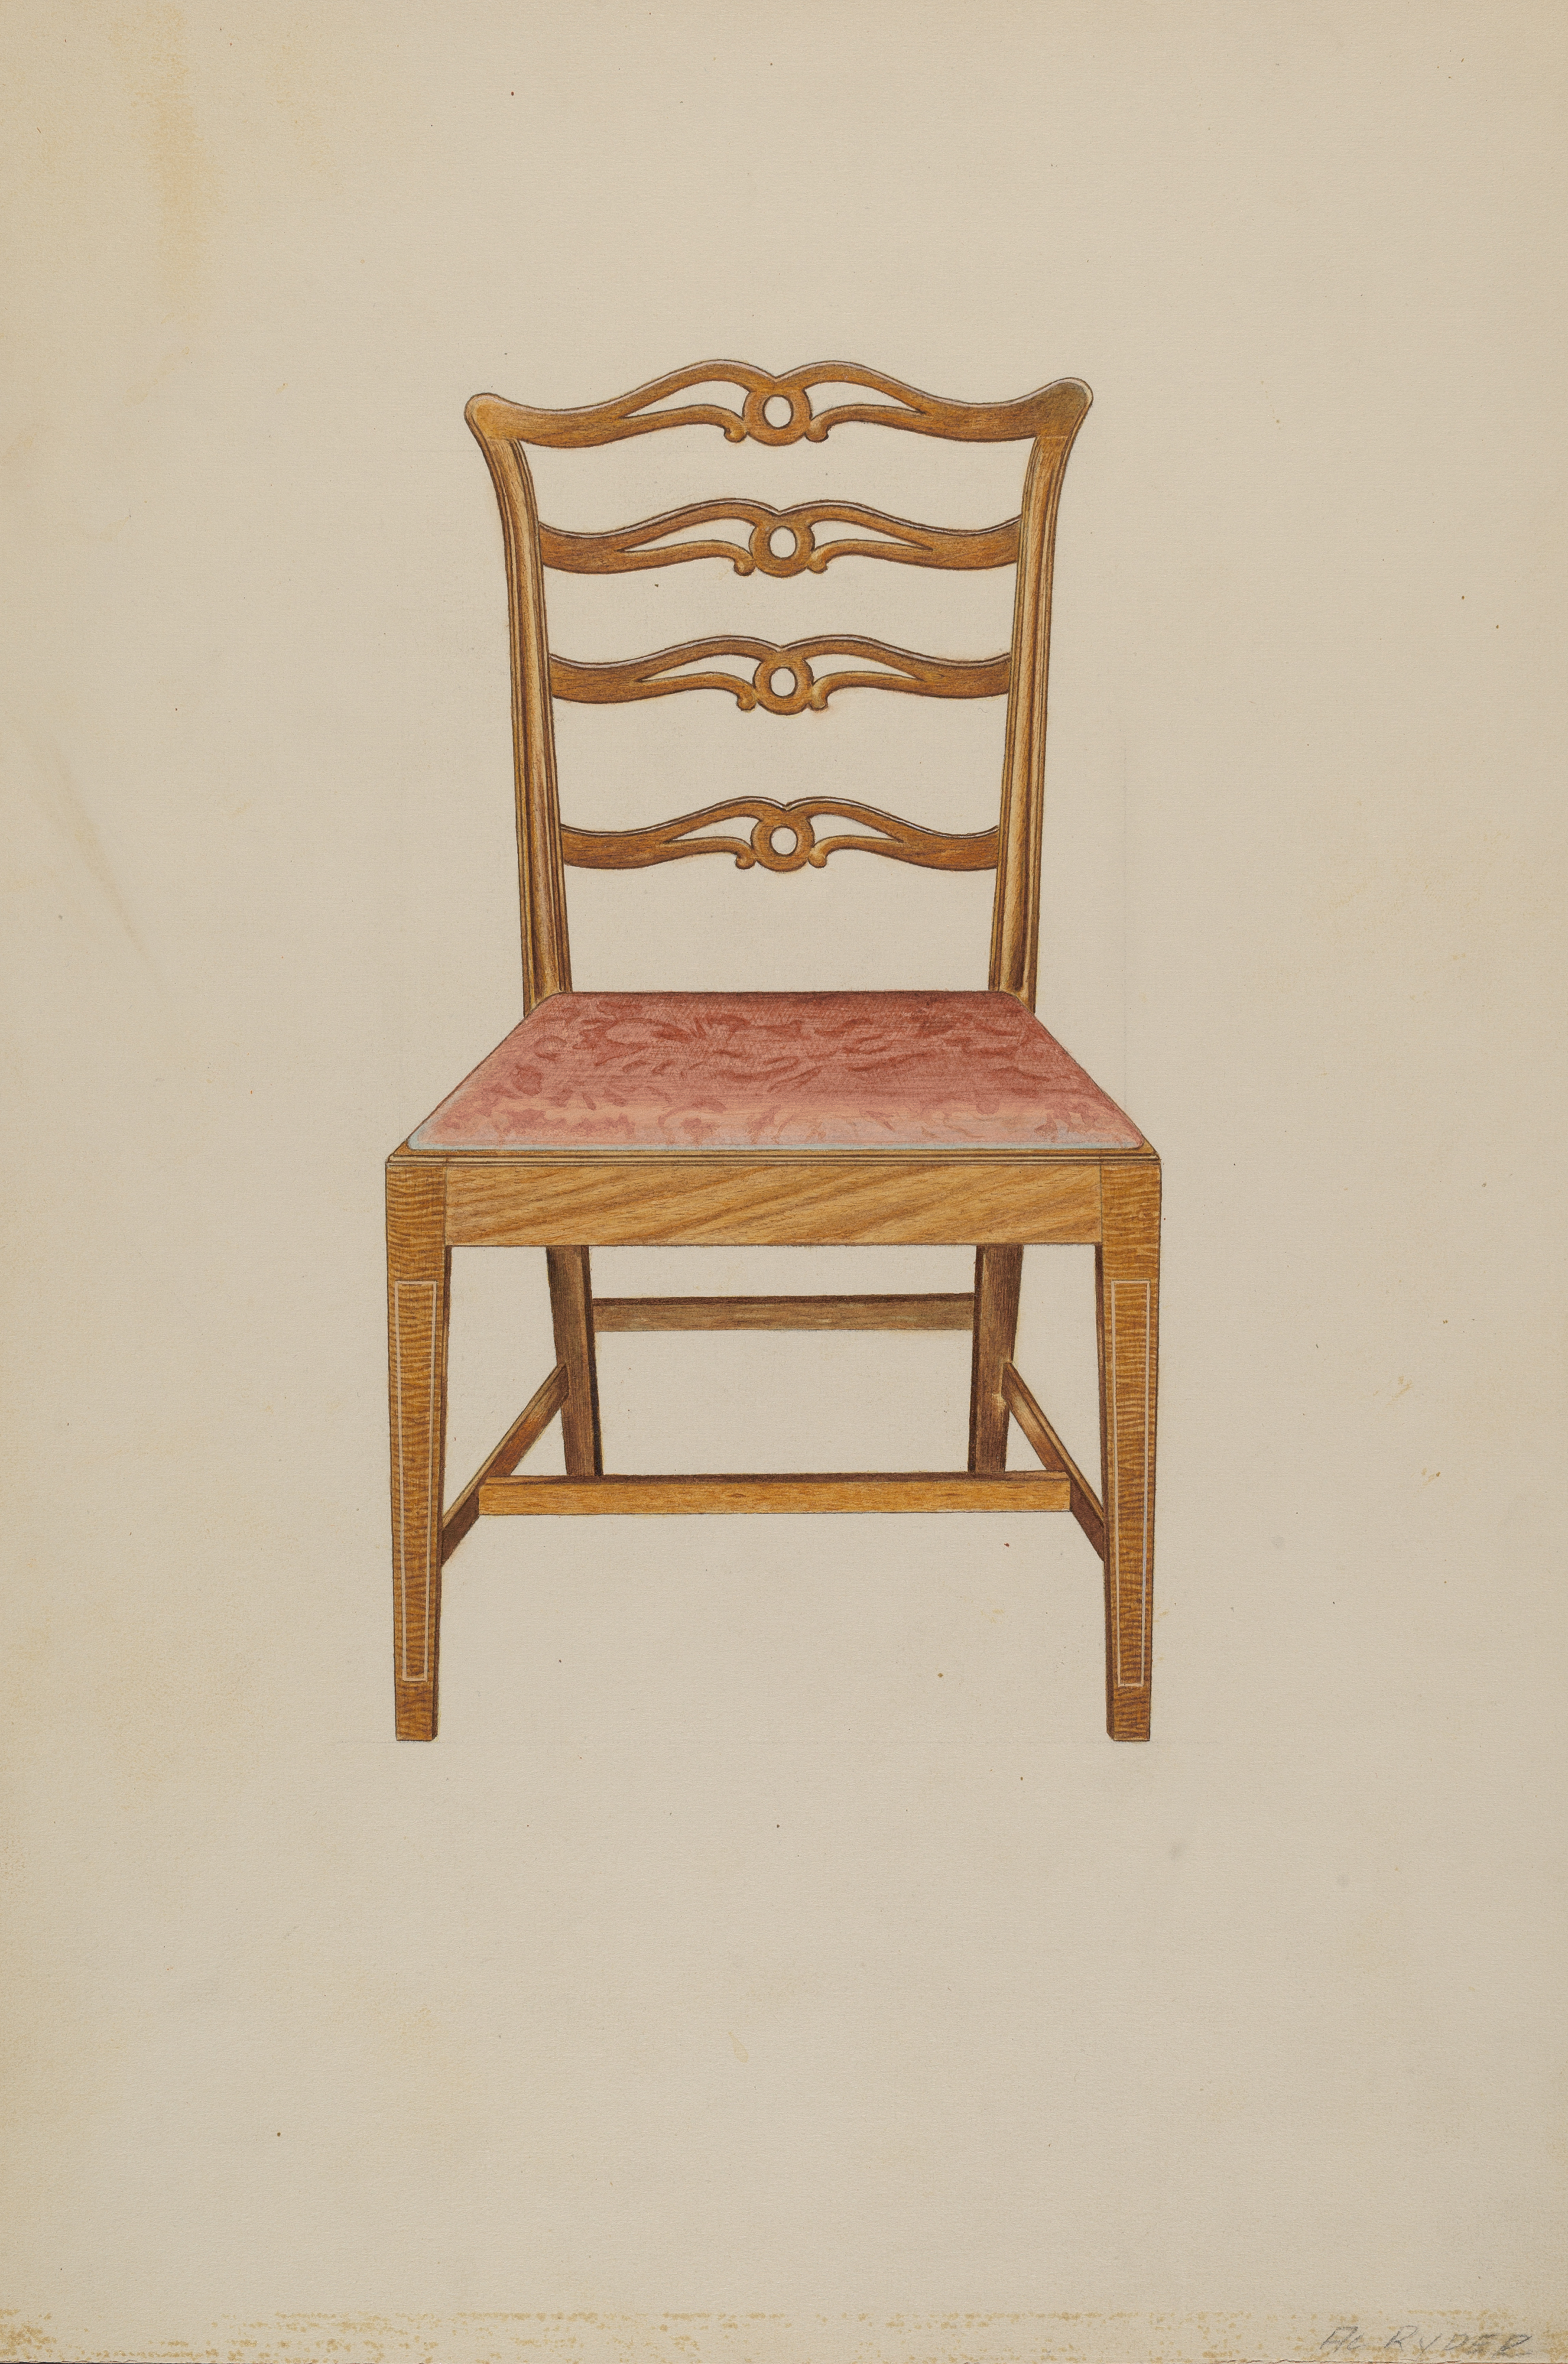 Picture of: File Albert Ryder Ladderback Chair 1935 1942 Nga 16439 Jpg Wikimedia Commons